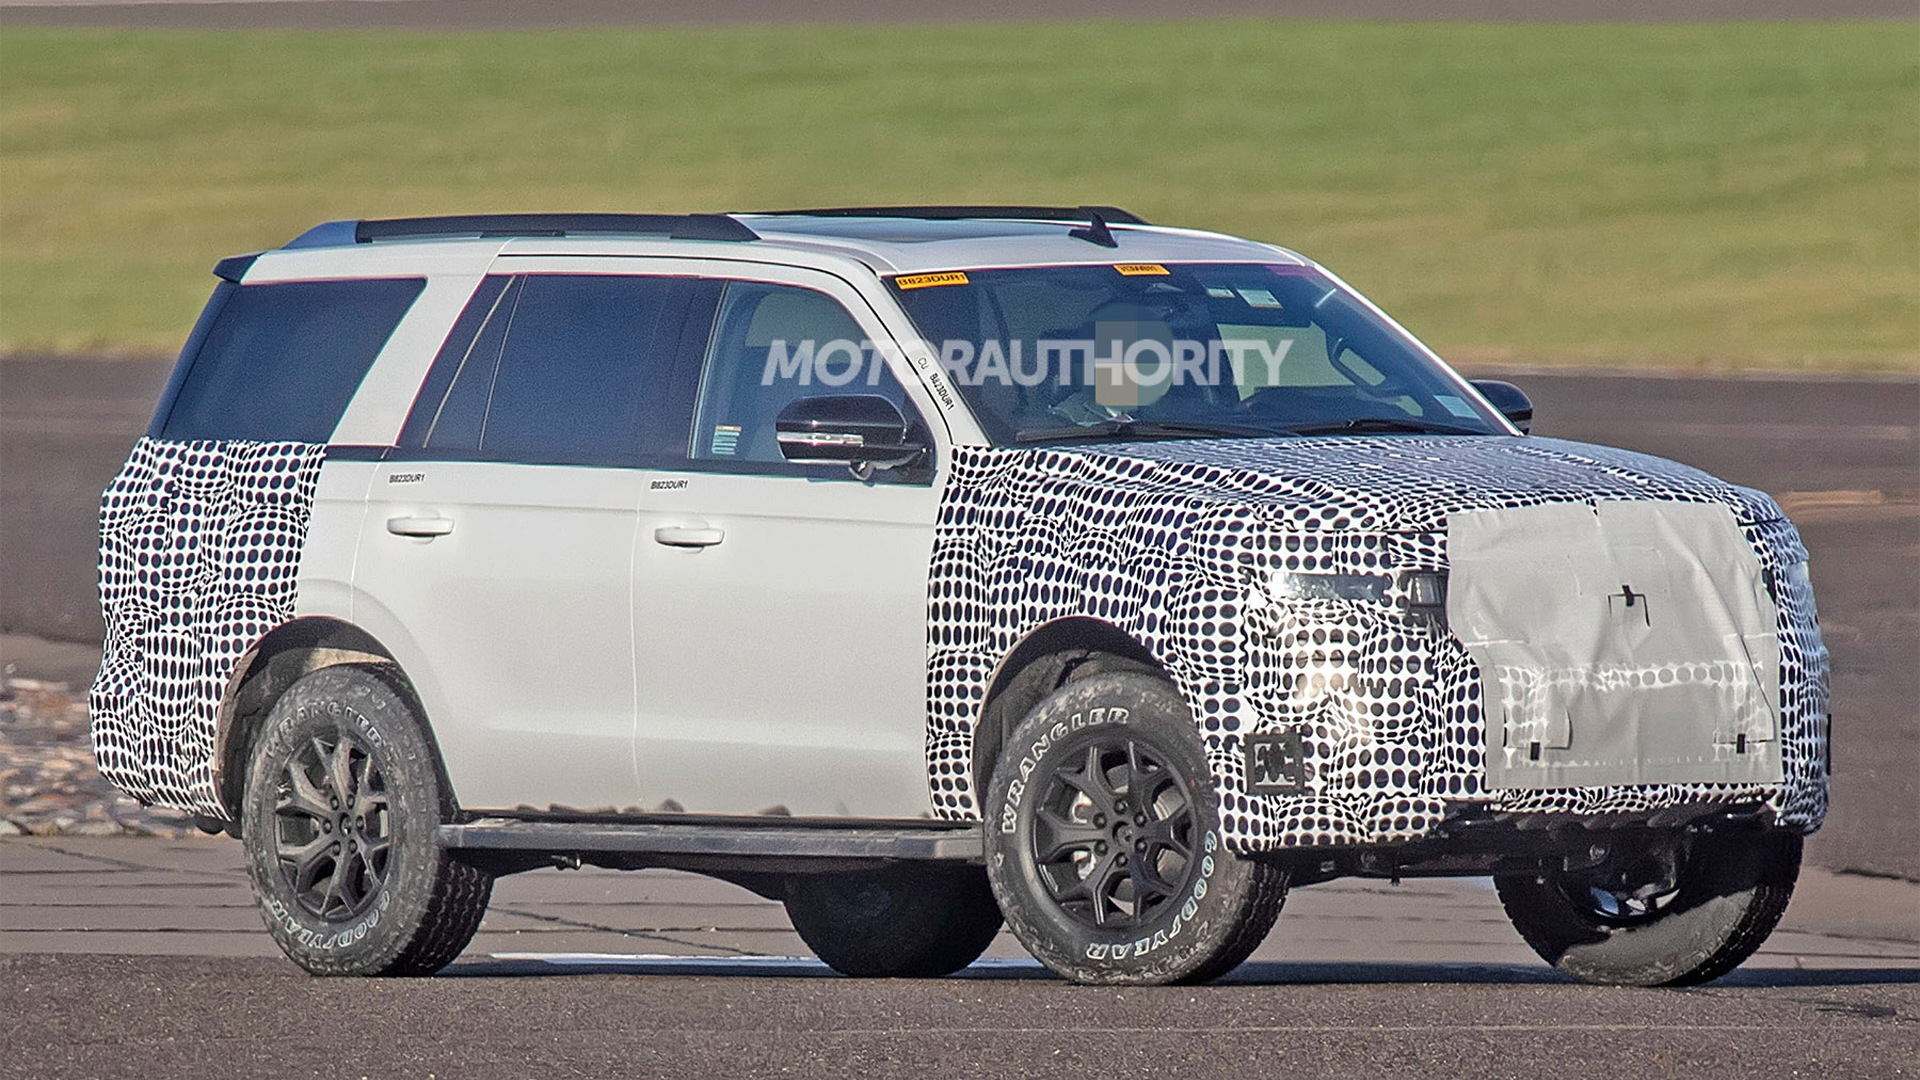 2022 Ford Expedition facelift spy shots - Photo credit: S. Baldauf/SB-Medien